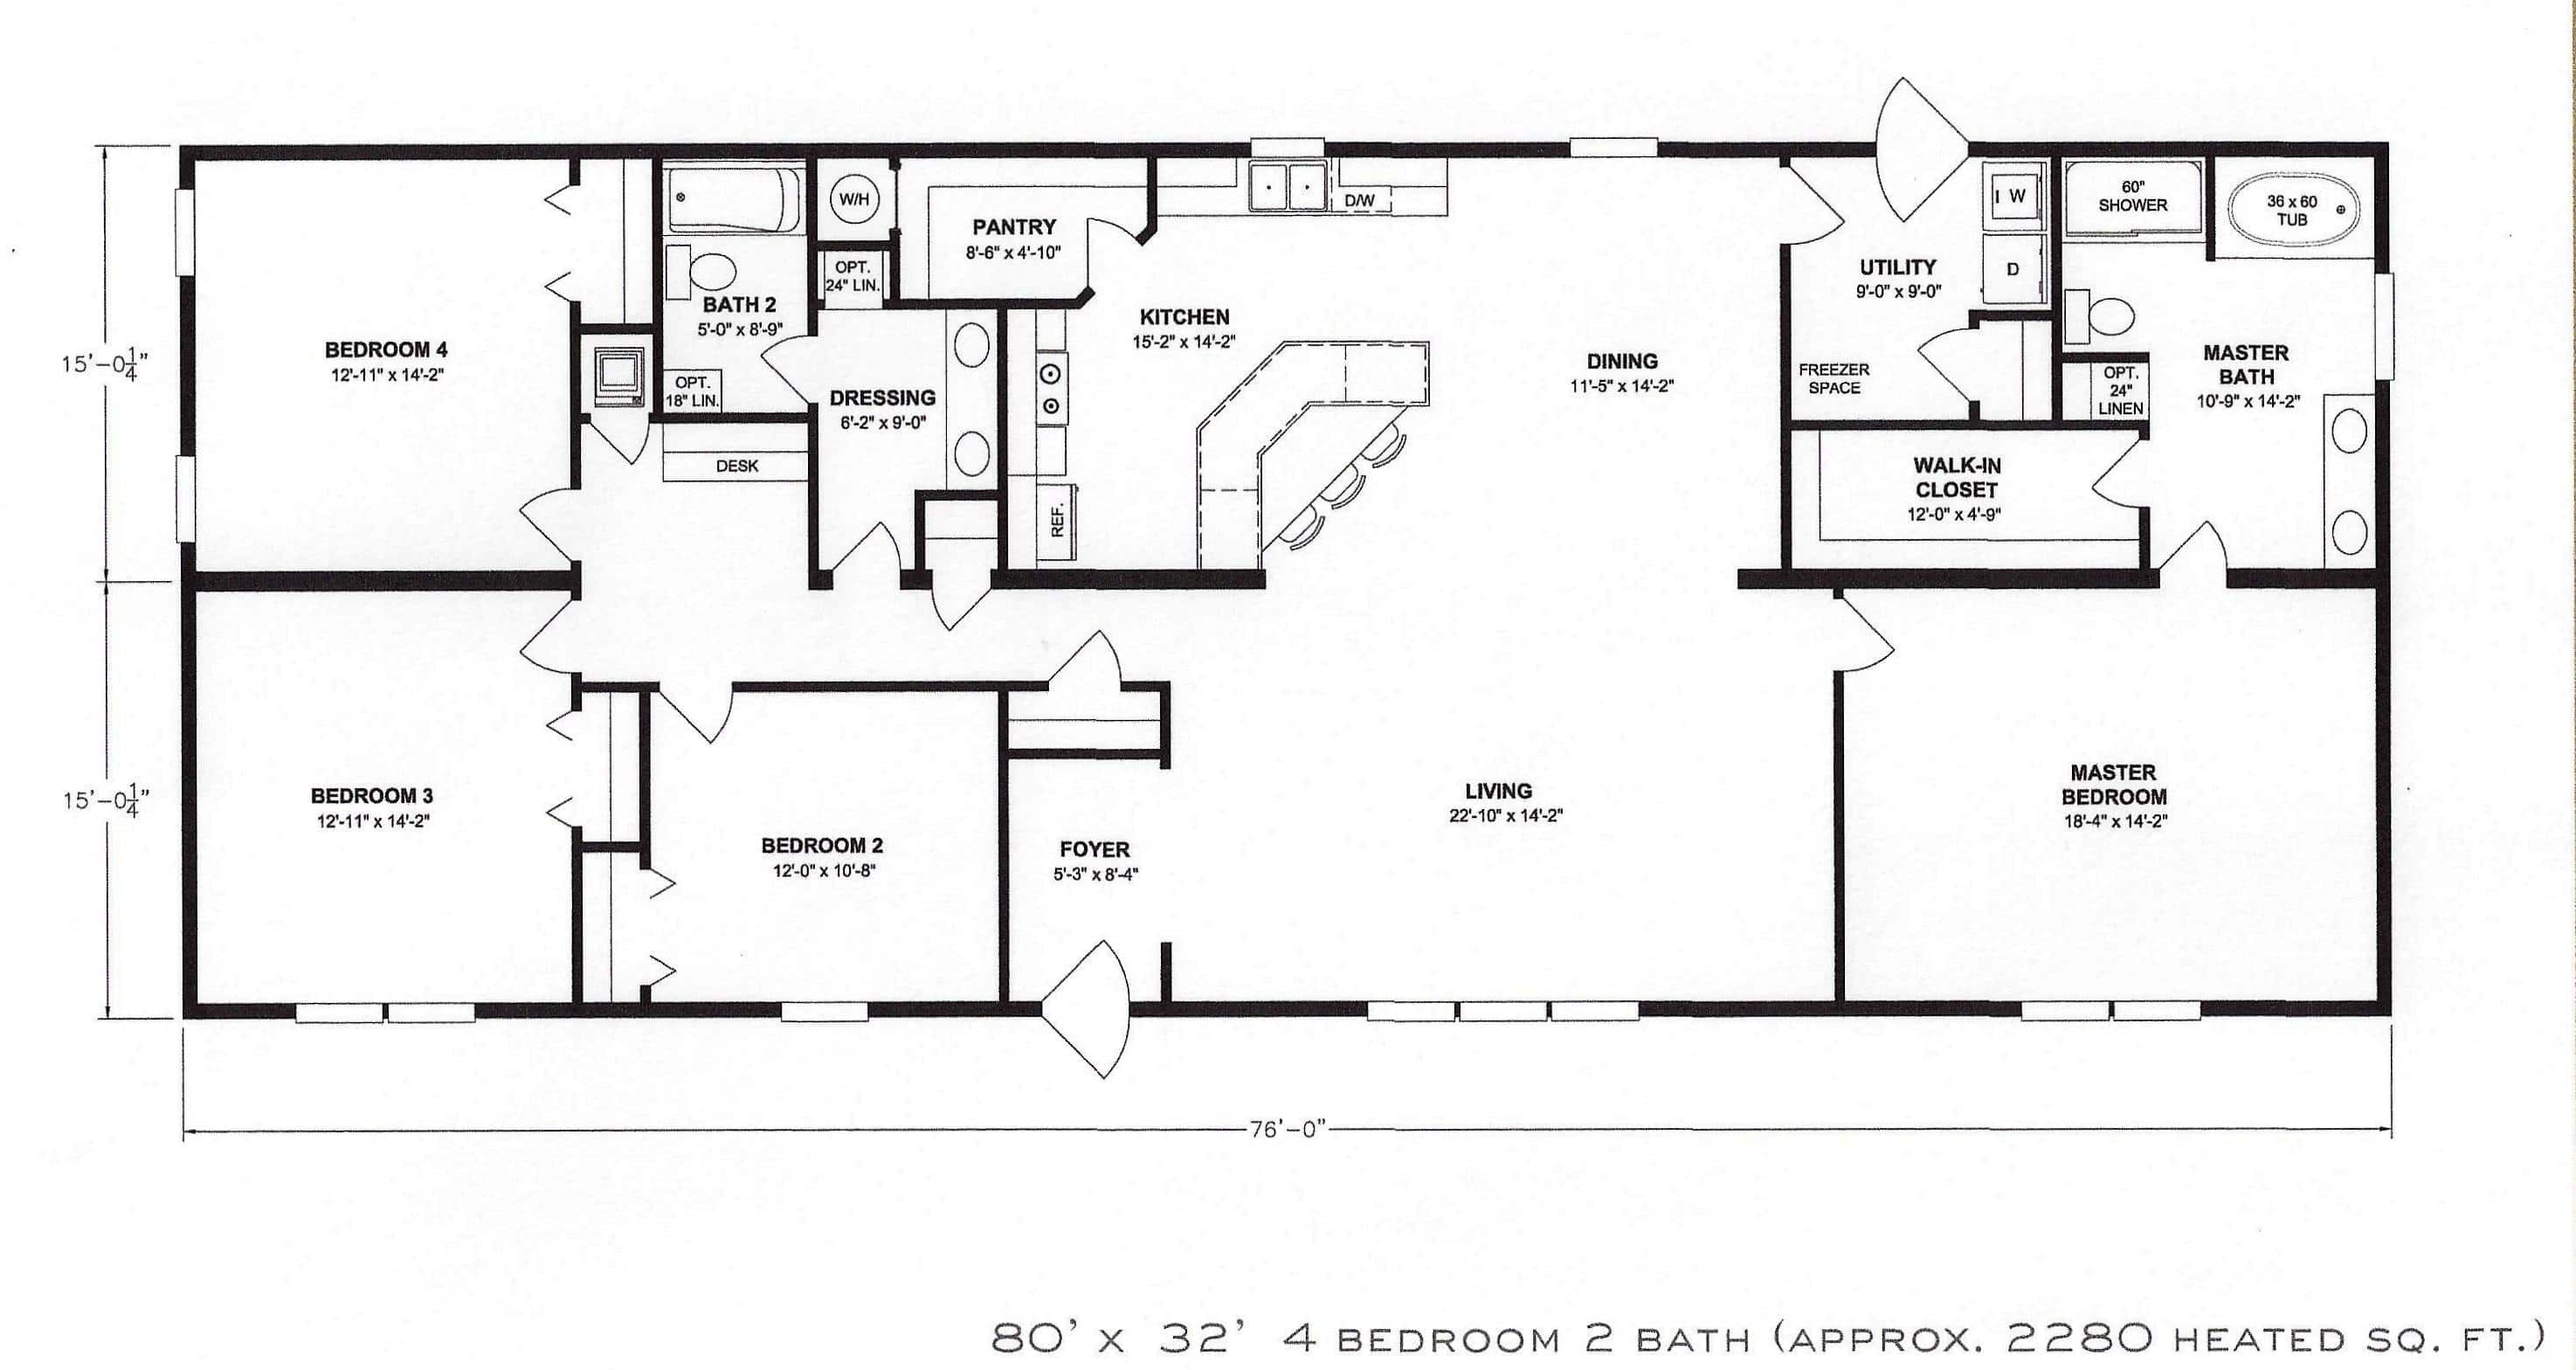 4 Bedroom Floor Plan F1001  Hawks Homes  Manufactured. Interior Design Ideas For Small Kitchen. Small Kitchen Design Ideas India. Designing The Perfect Kitchen. Designing A Kitchen Floor Plan. Kitchen Chimney Design. Coastal Living Kitchen Designs. Kitchen Floor Tile Designs Images. Kitchen Table Design